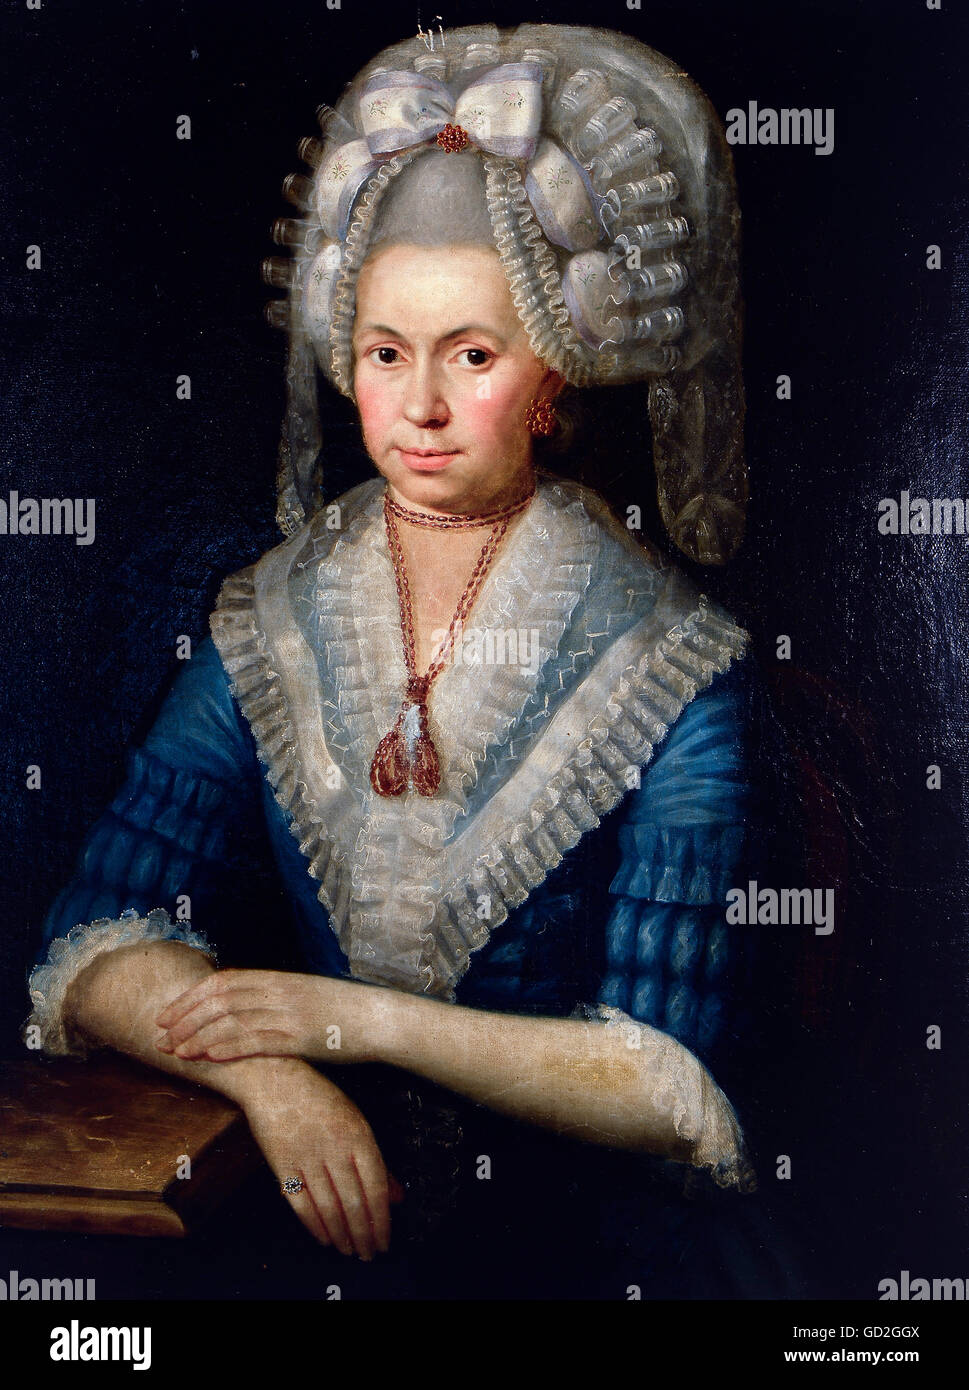 old w th century stock photo royalty image  old w 18th century